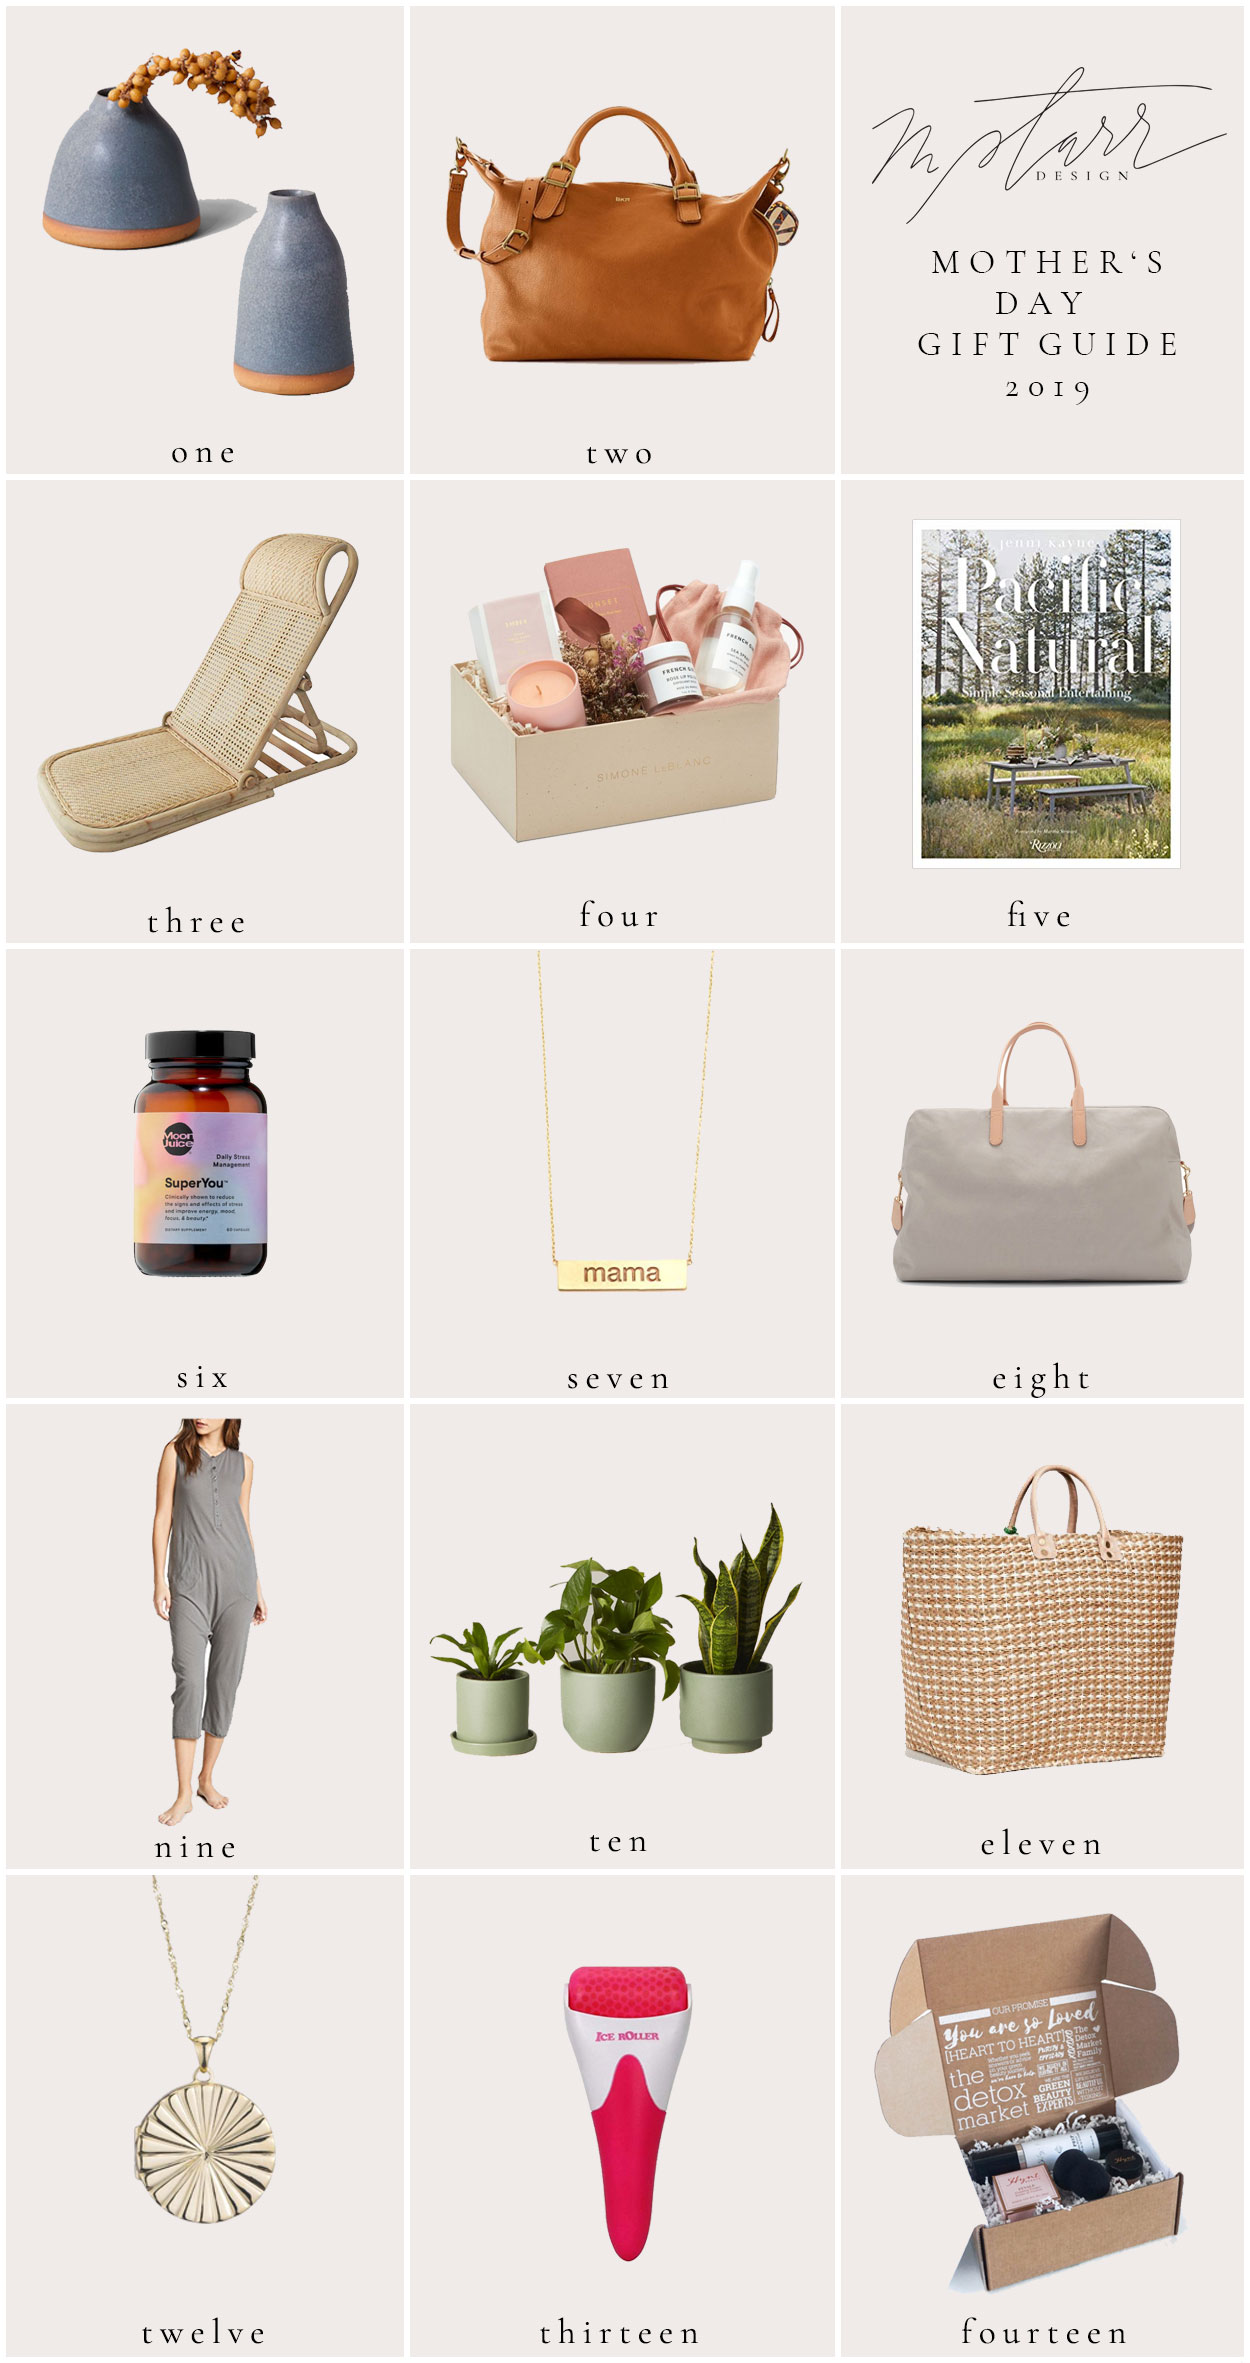 mStarr design mother's day 2019 gift guide